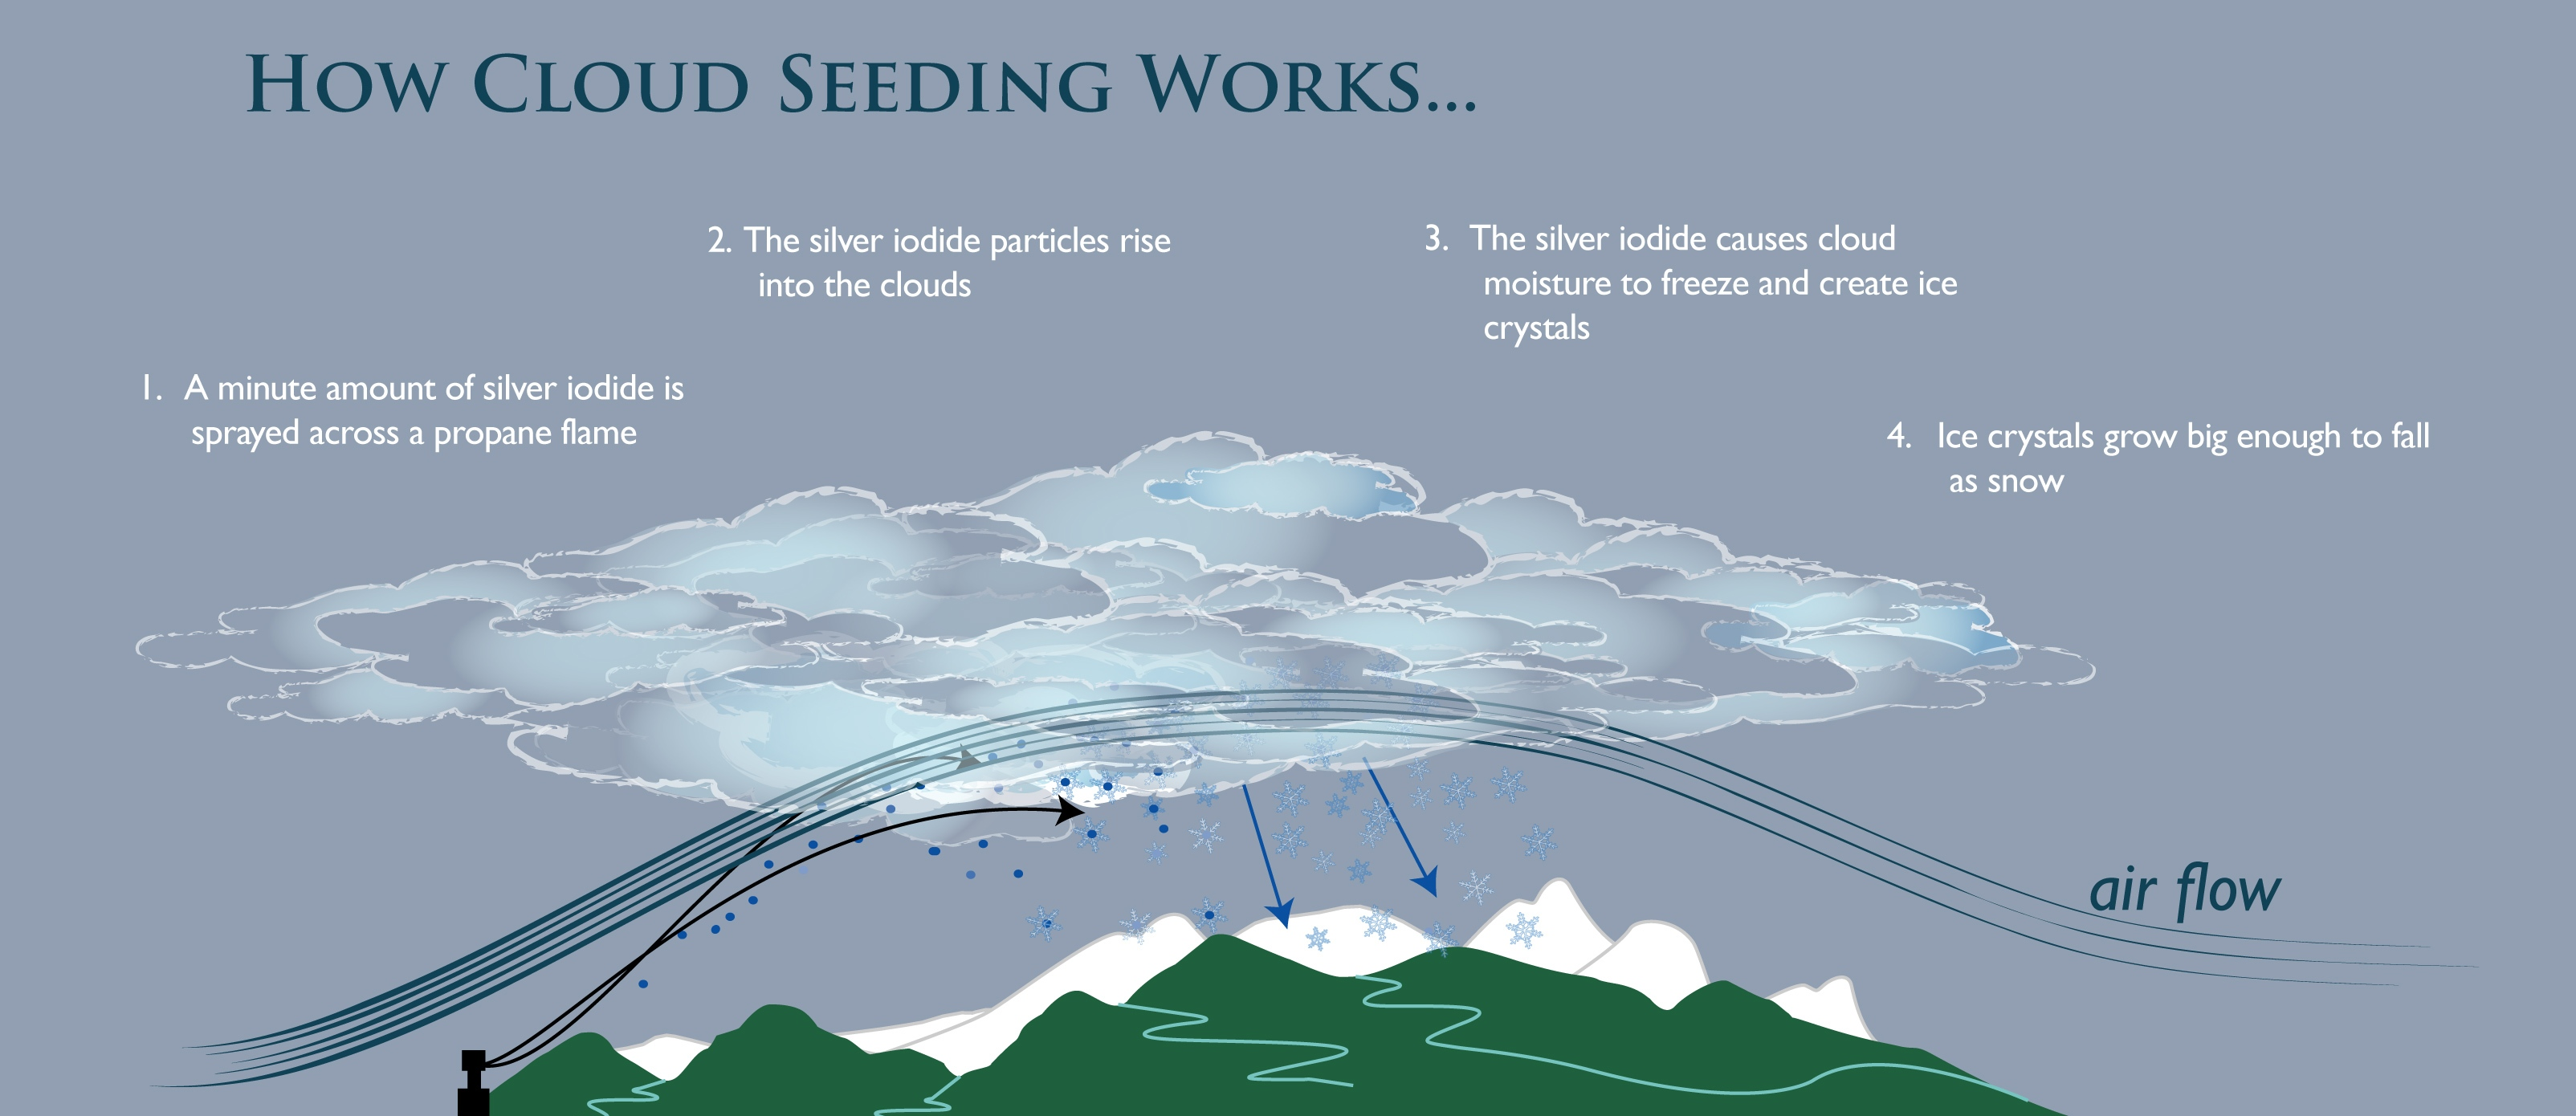 How Cloud Seeding Works